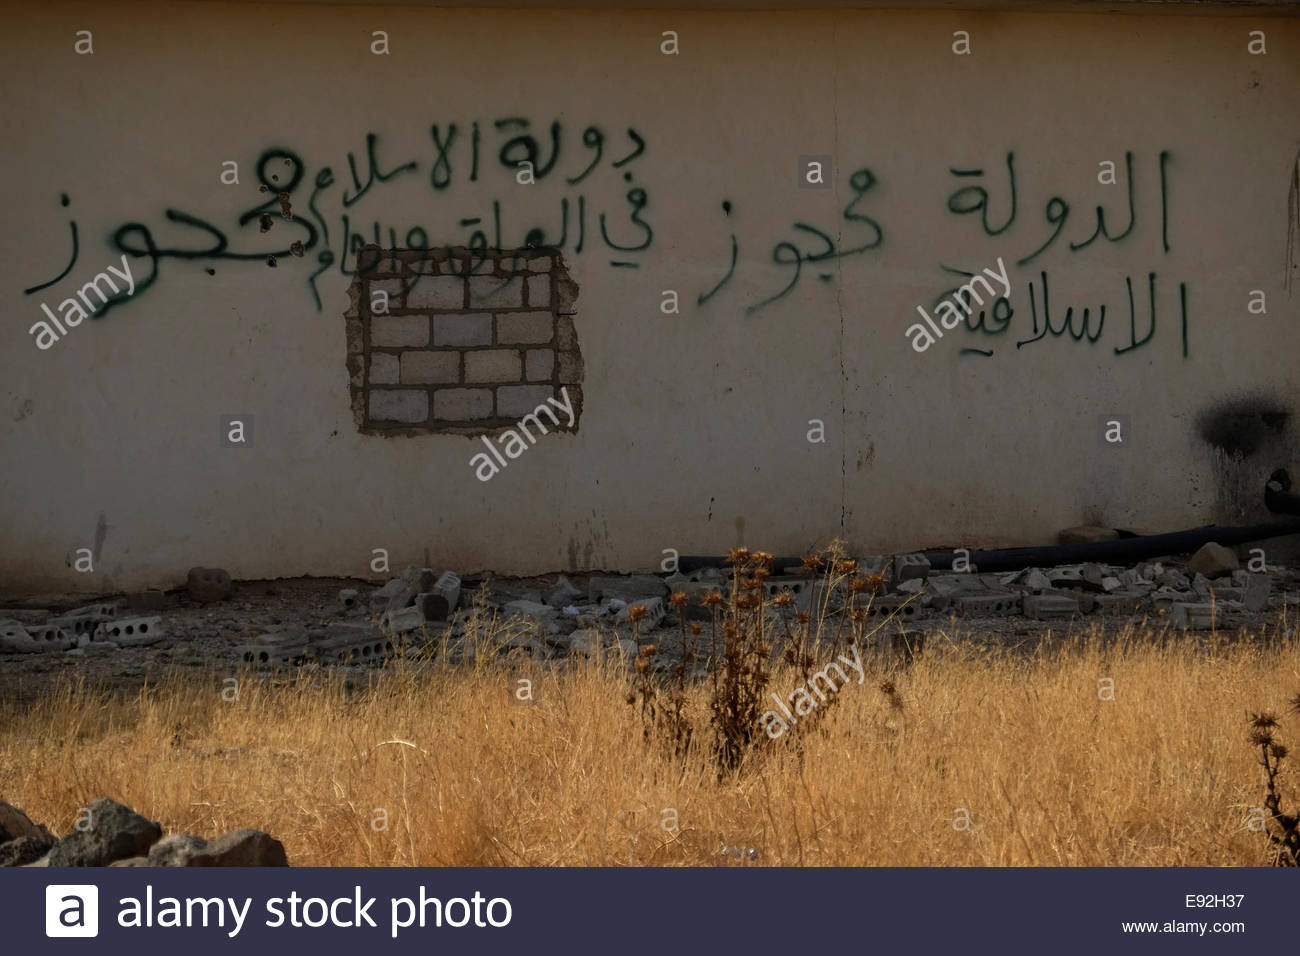 A writing in Arabic in a wall reads The Islamic State in the